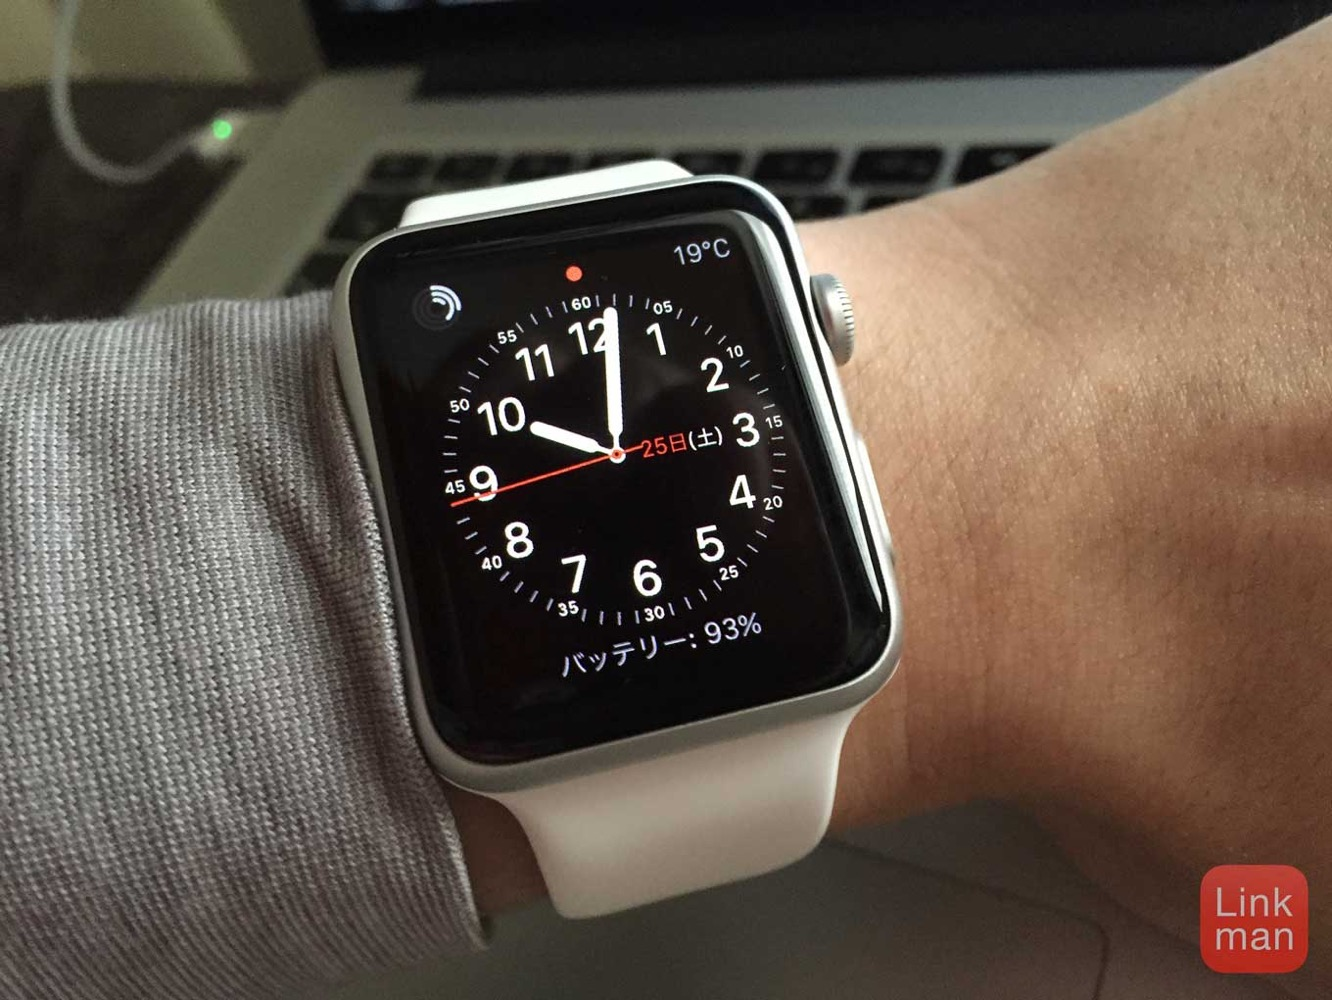 Applewatchimg